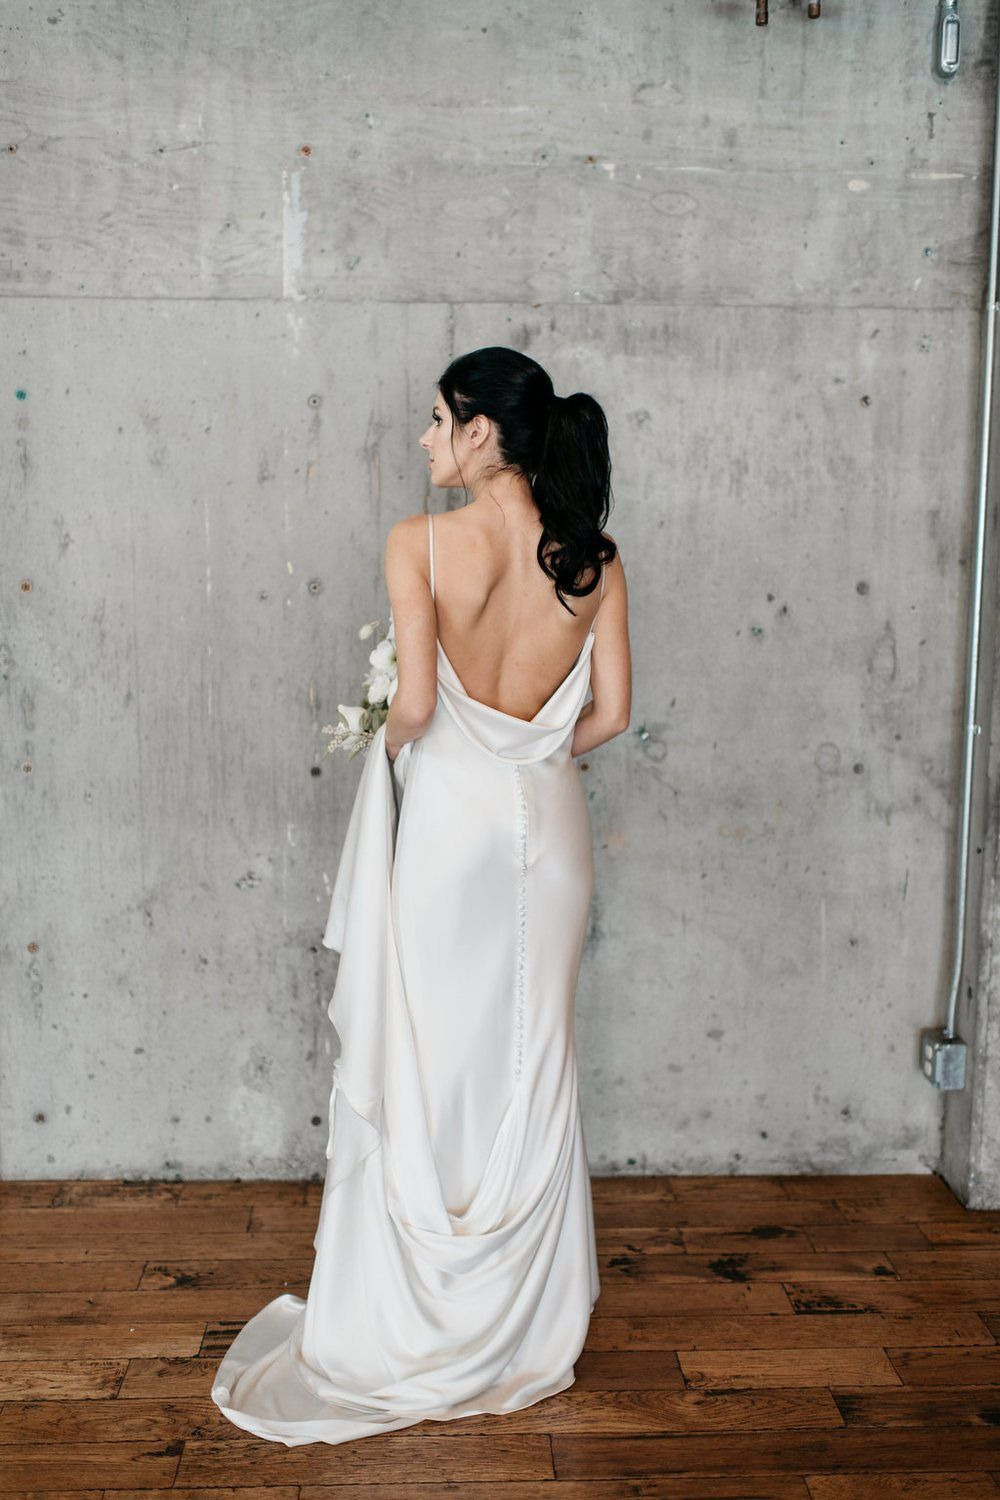 Black white wedding dress  Monochromatic Wedding Inspiration Black and White and Fab All Over